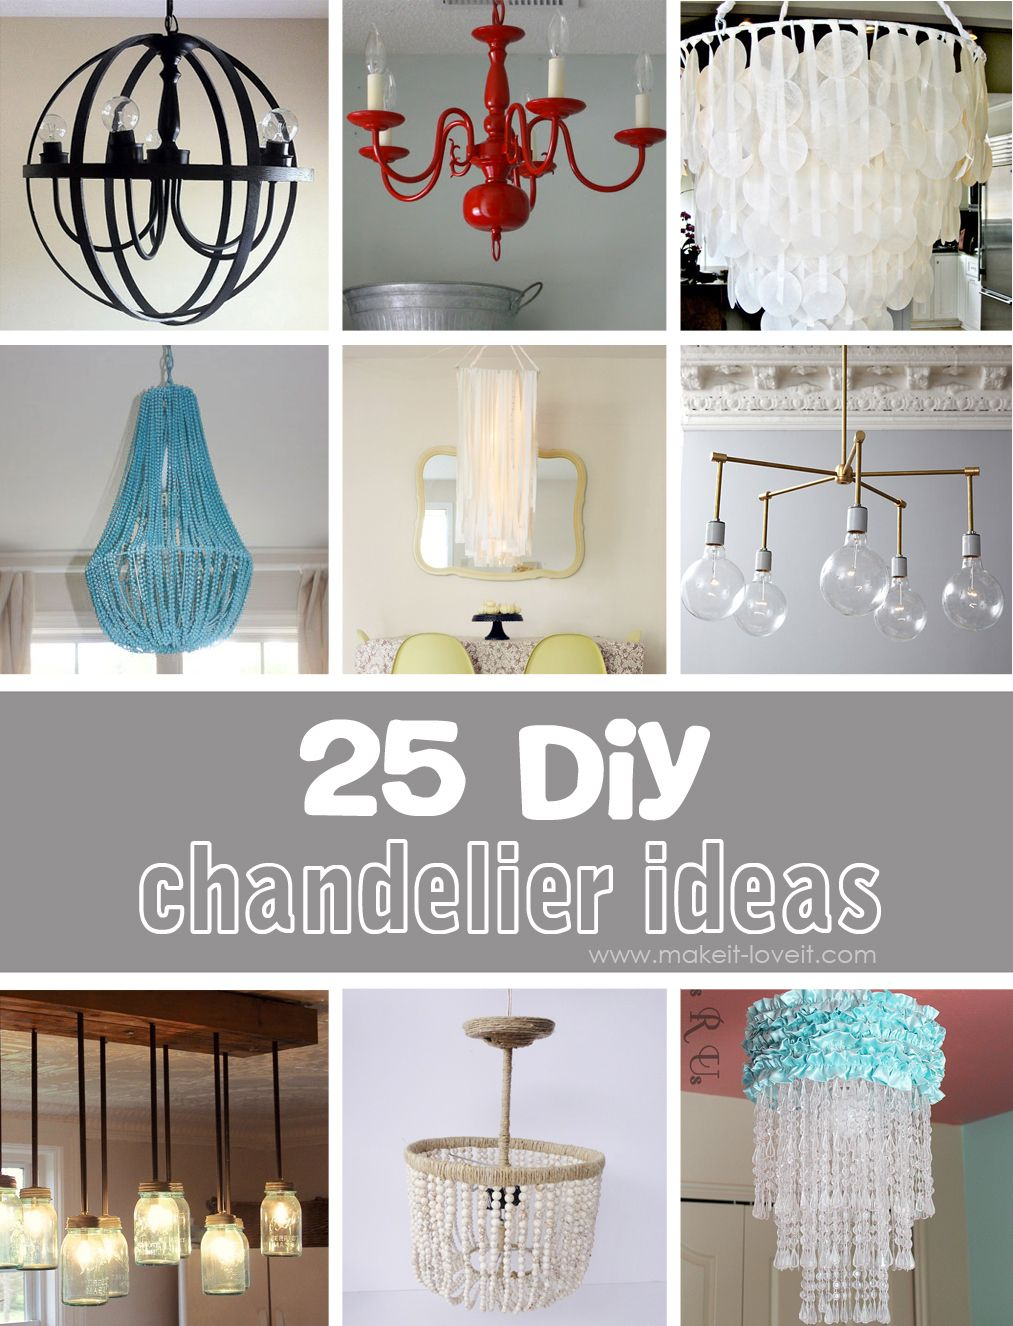 25 Diy Chandelier Ideas With Images Diy Chandelier Homemade